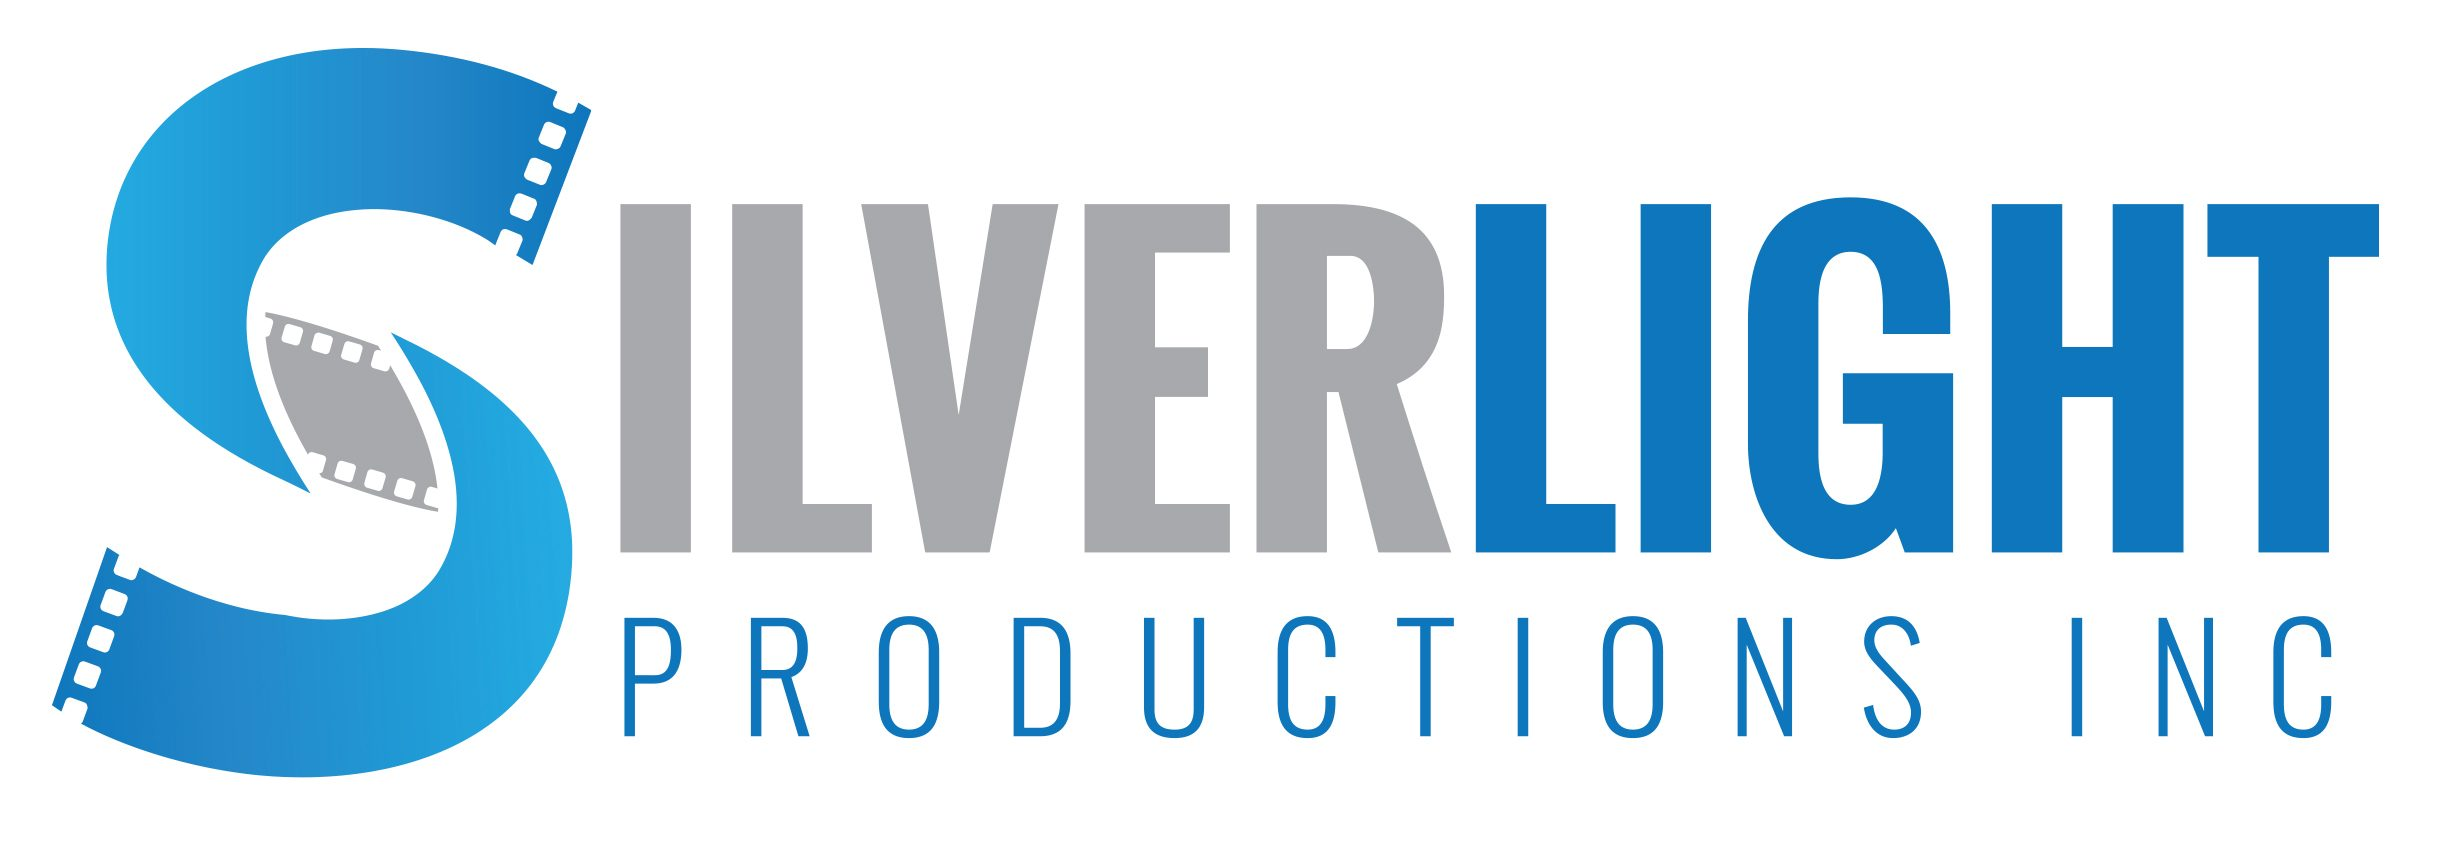 Silverlight Productions Inc